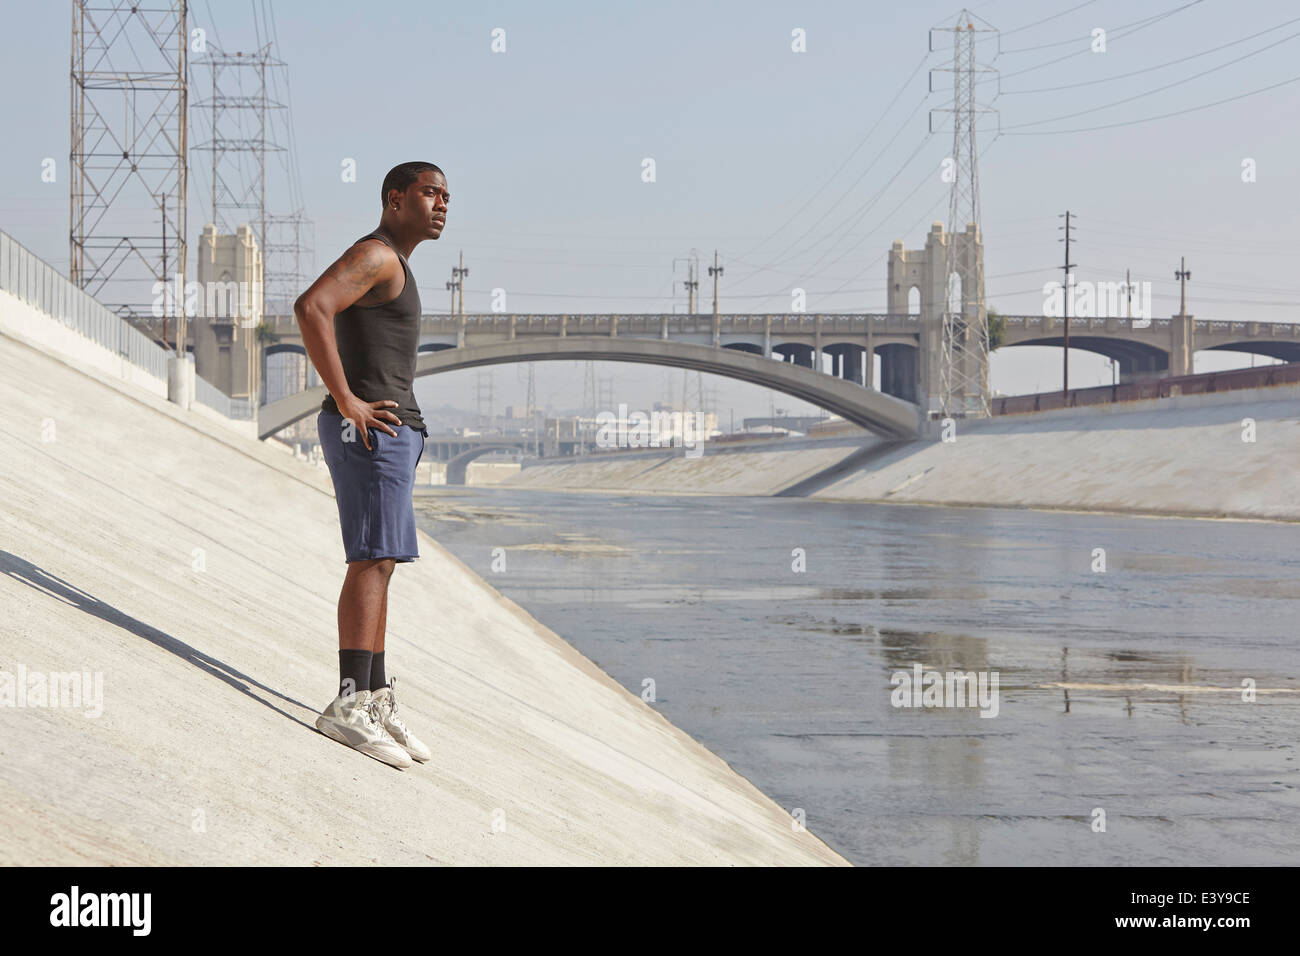 Young male runner en faisant une pause sur les berges de la ville Photo Stock